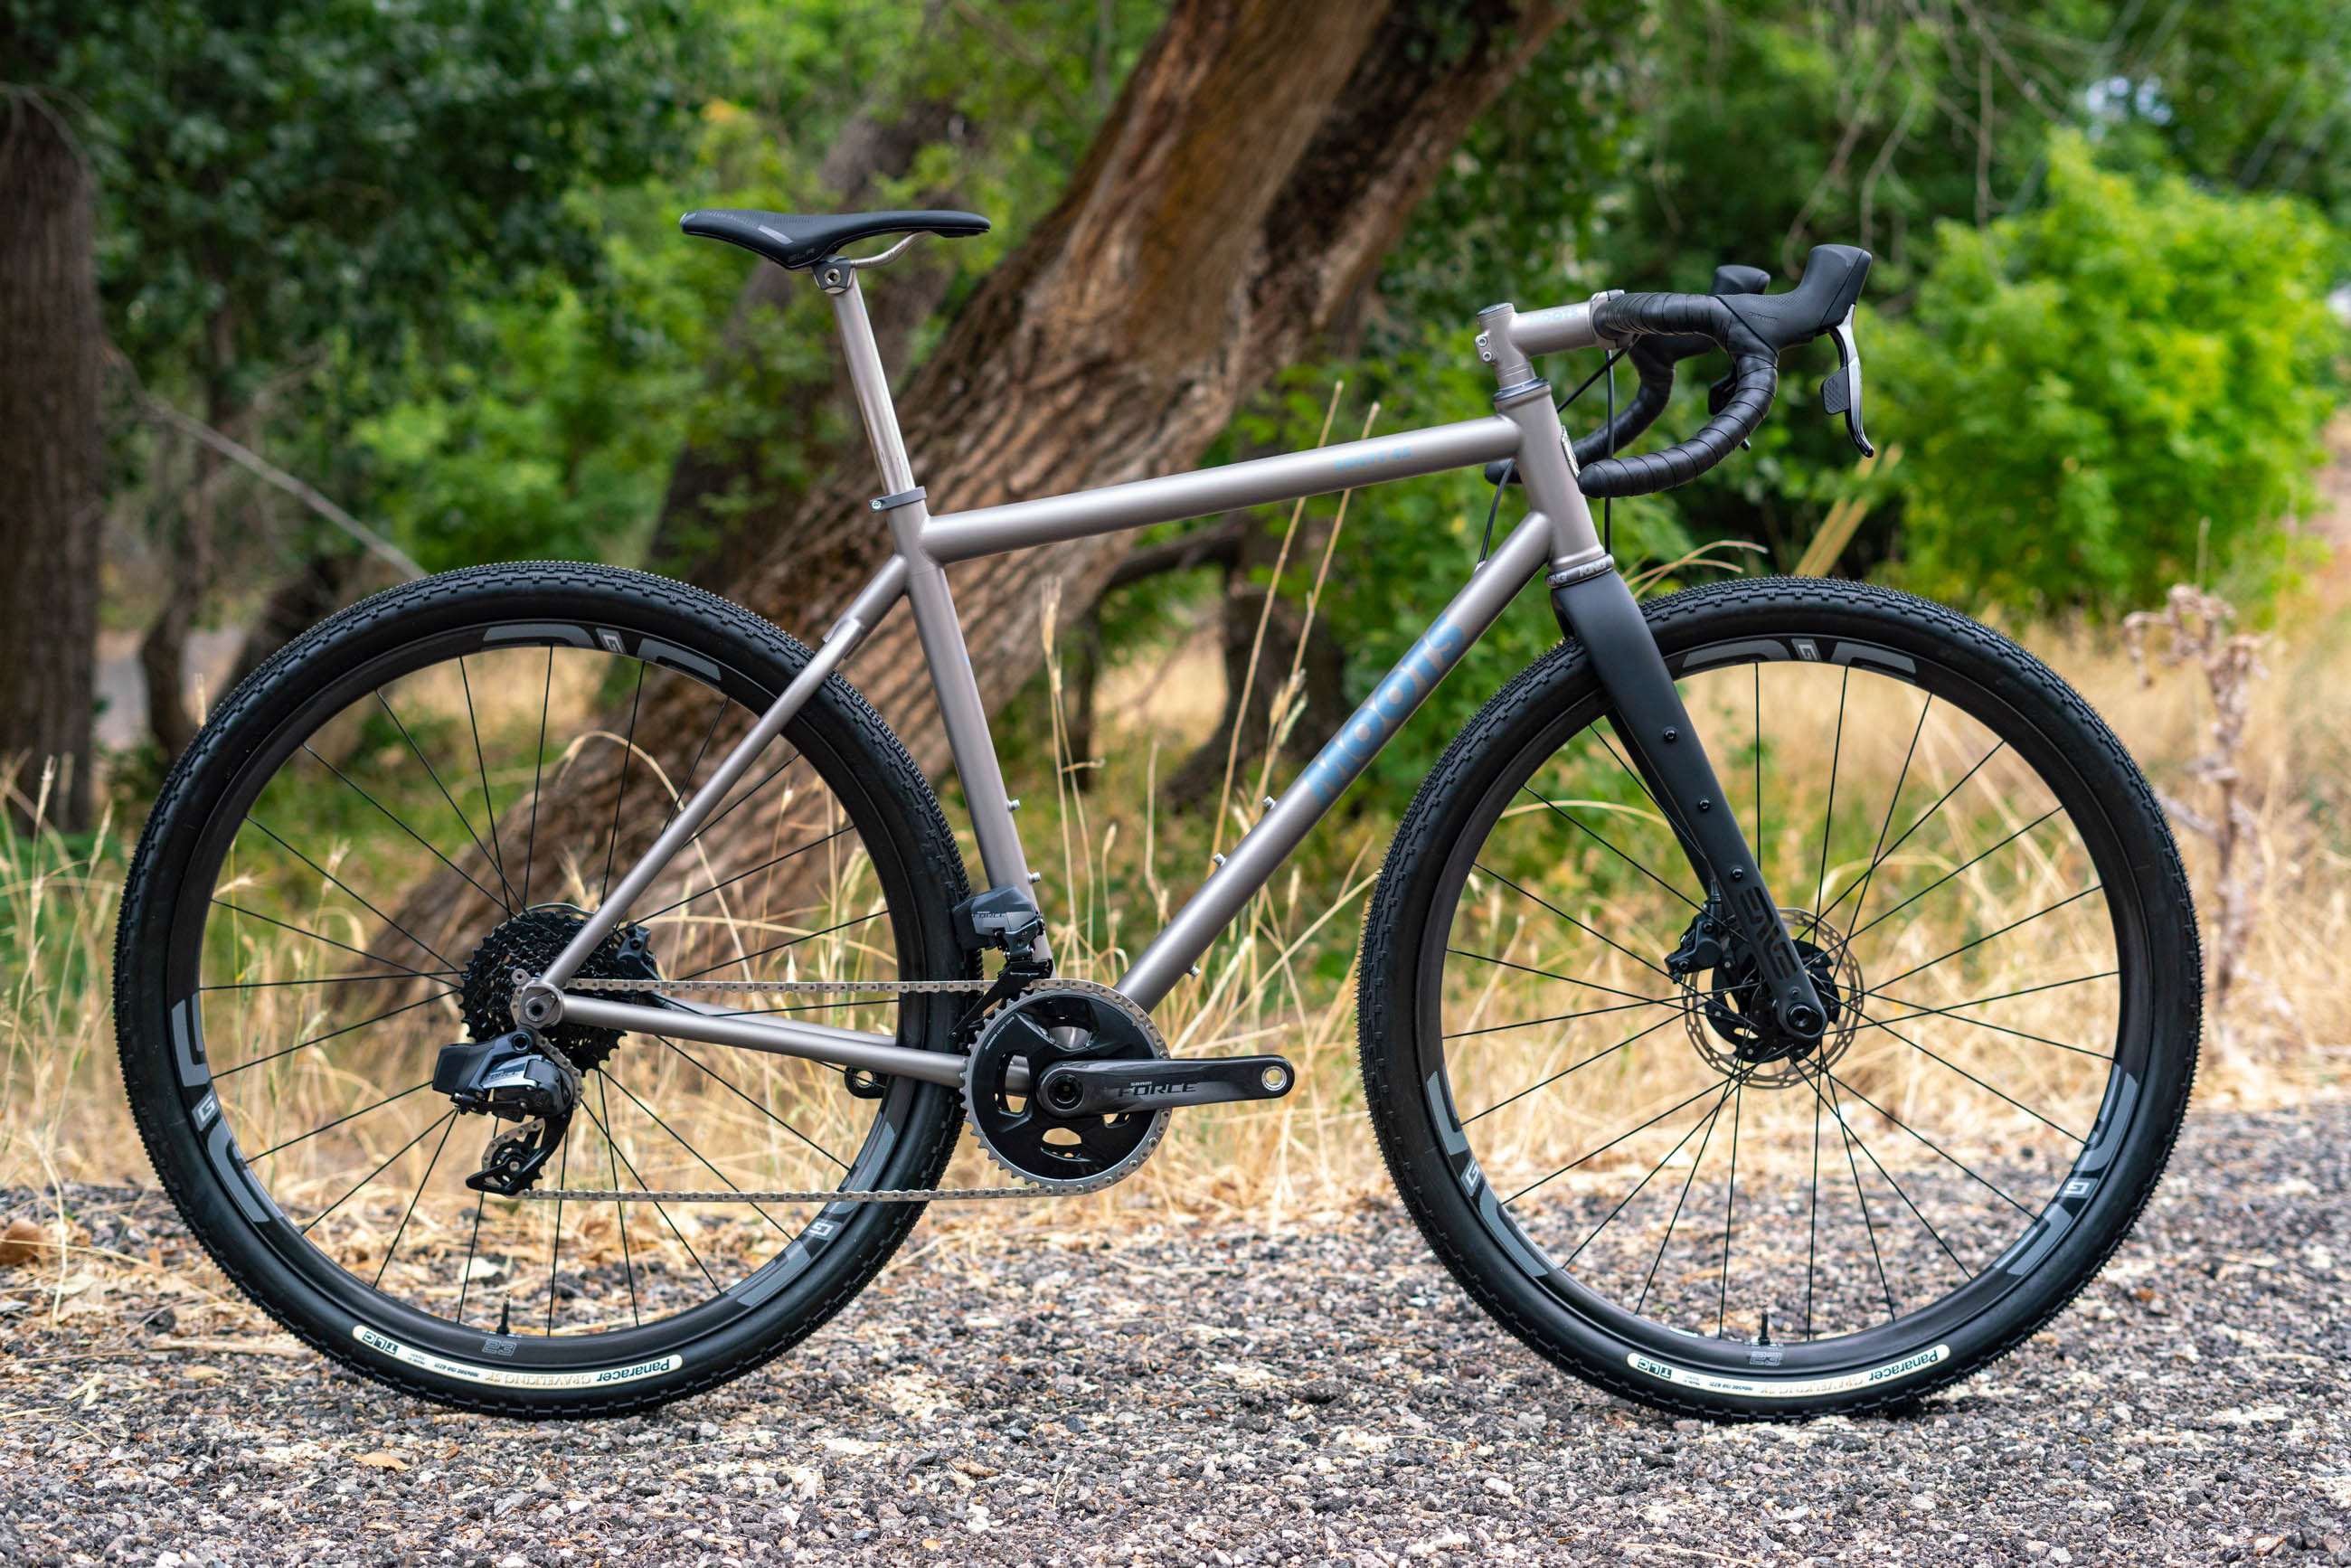 ENVE's new Adventure Fork was developed with input from custom builders.